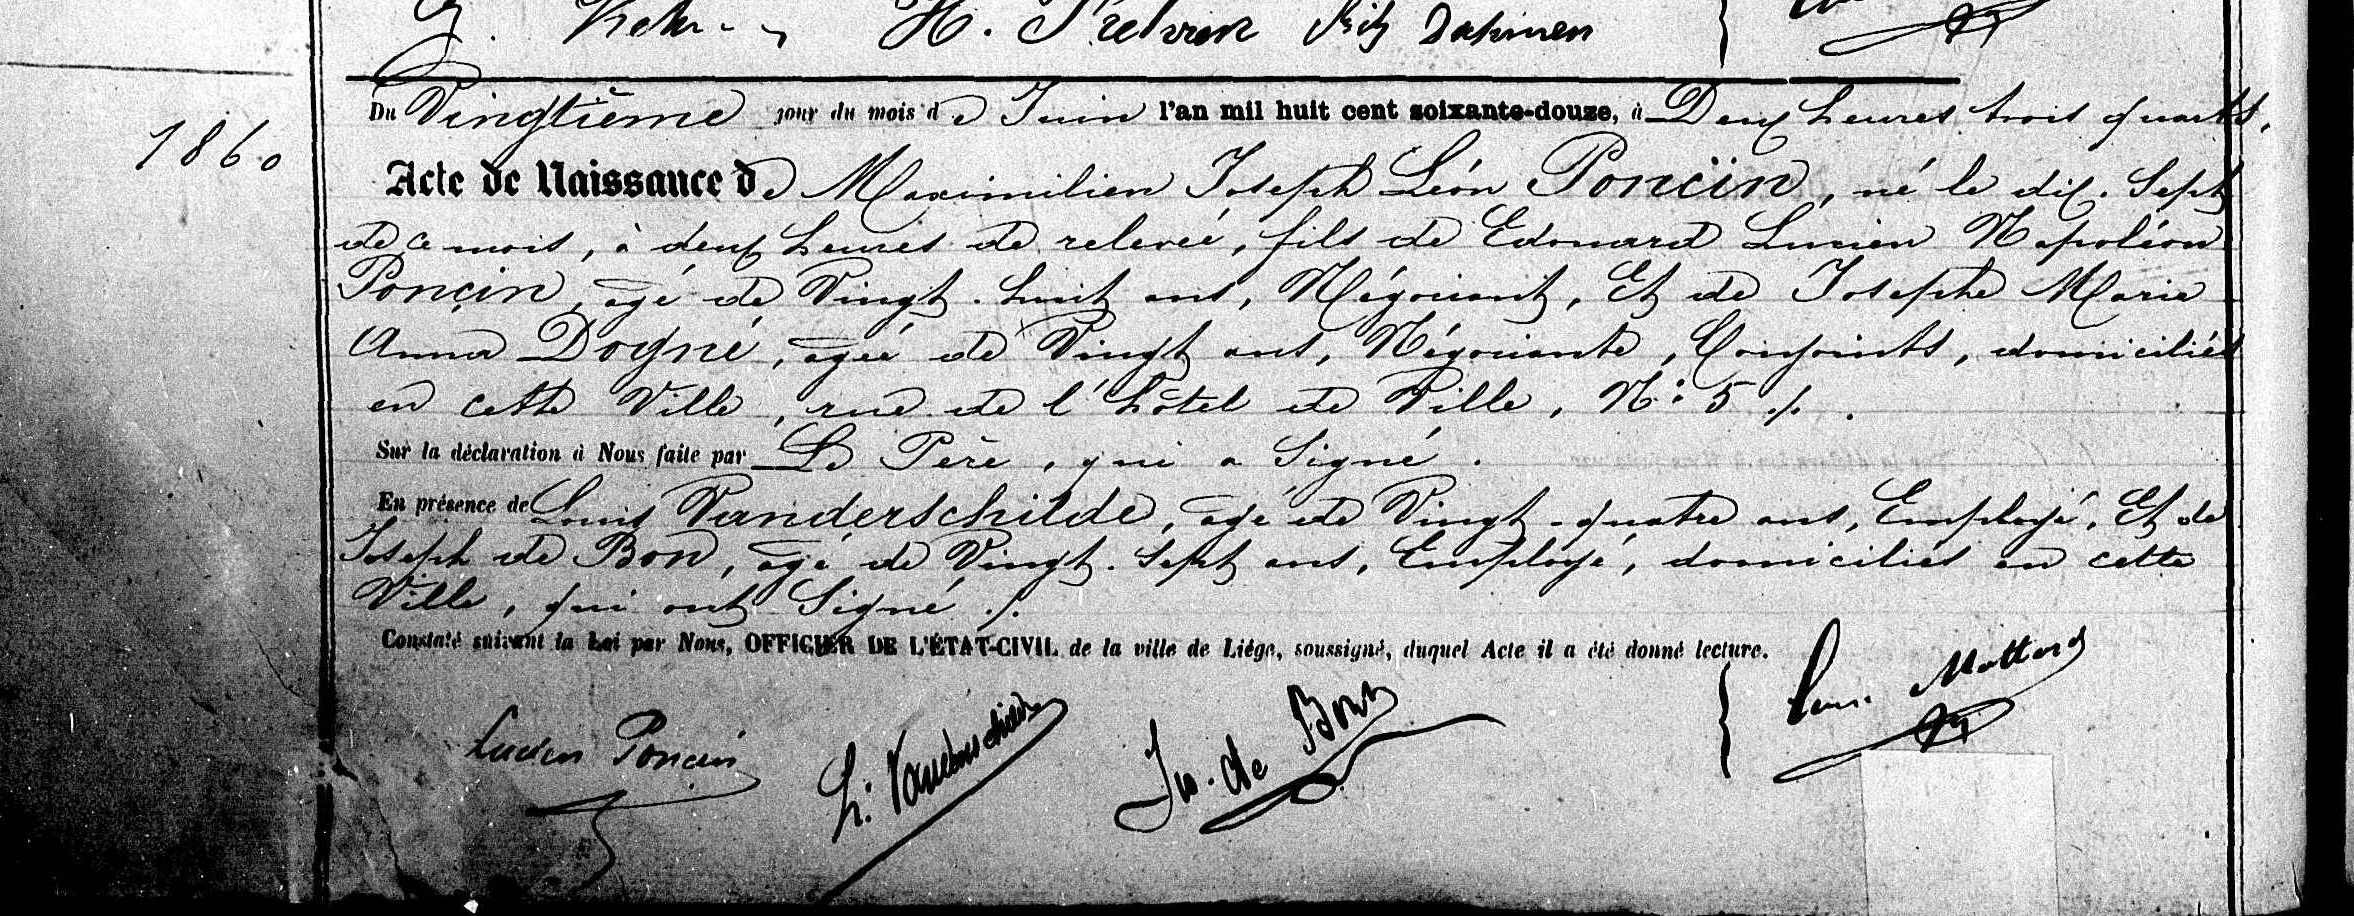 1872 Birth Certificate: Maximilien Poncin